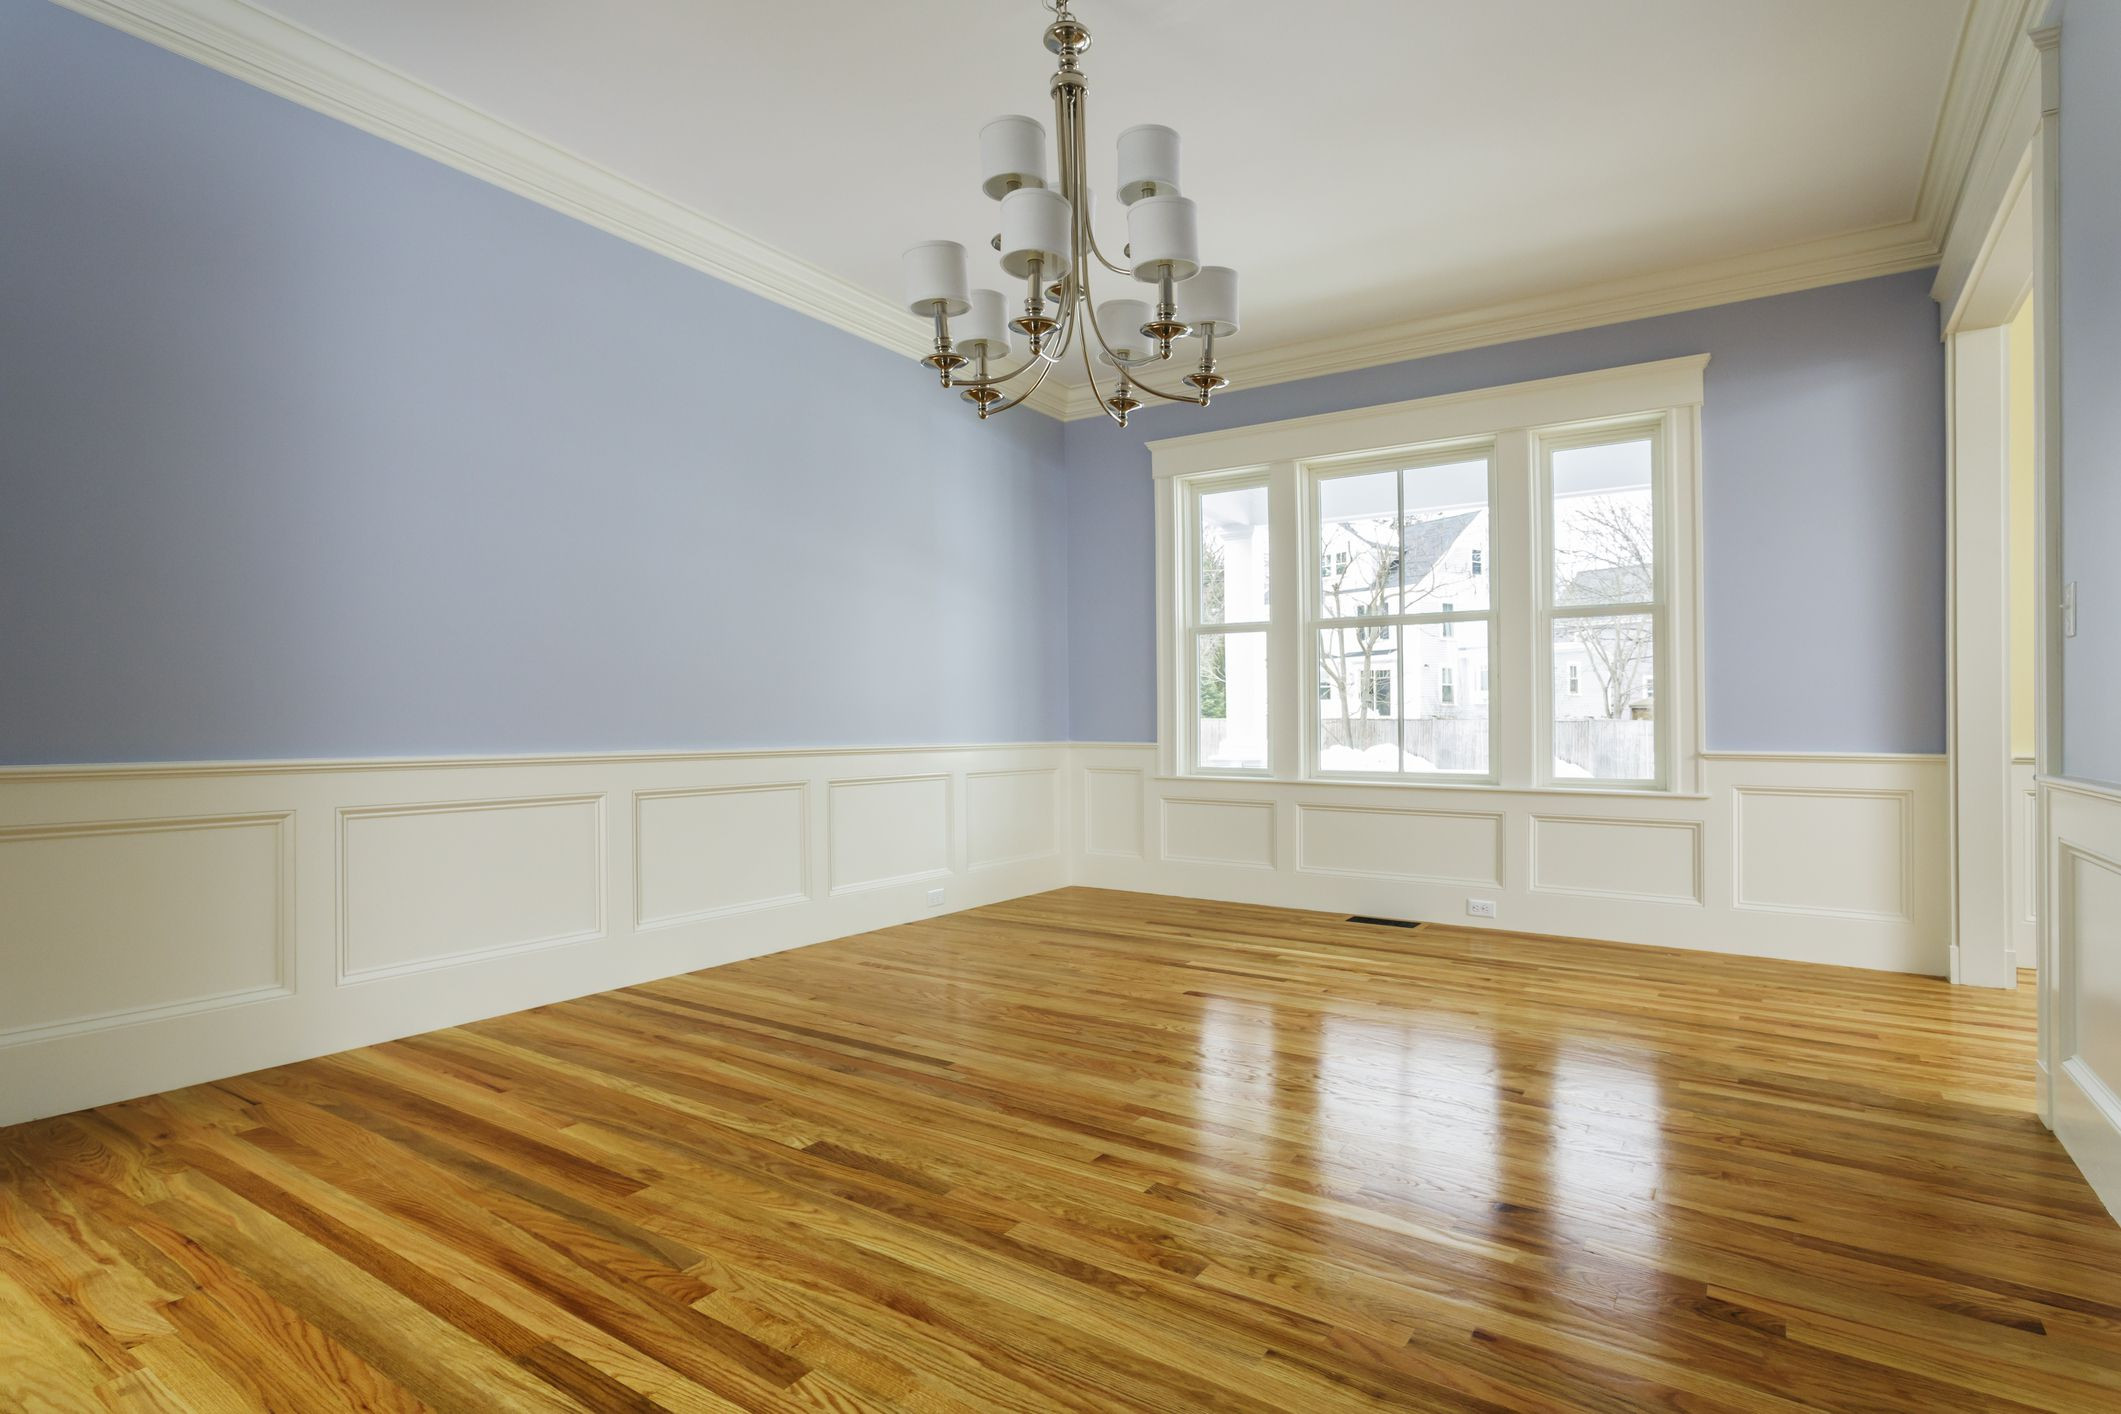 hardwood floor polyurethane application of hardwood flooring finish stain decorative treatments in hardwood 58f6bf9b5f9b581d59754f48